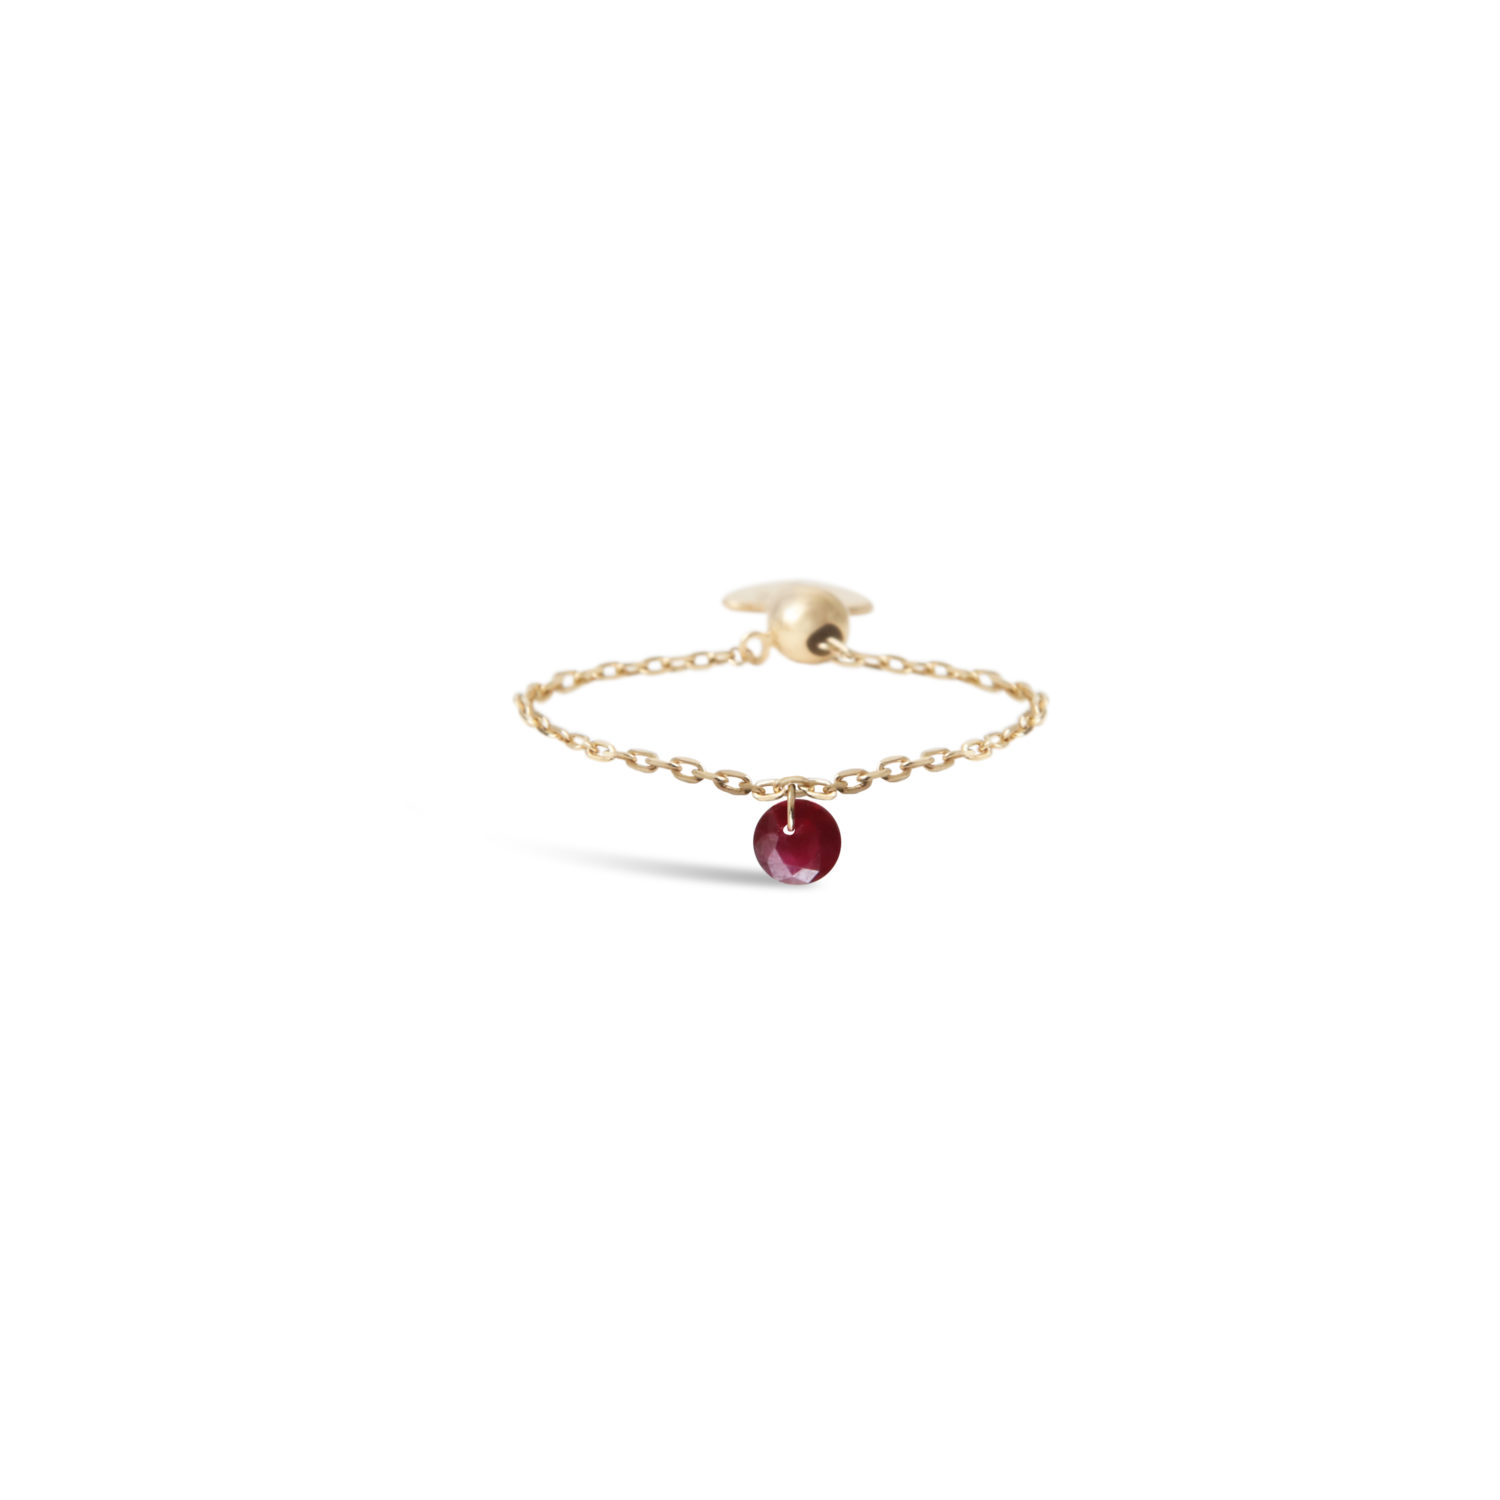 BAGUE CHAINETTE 1 RUBIS PERSEE